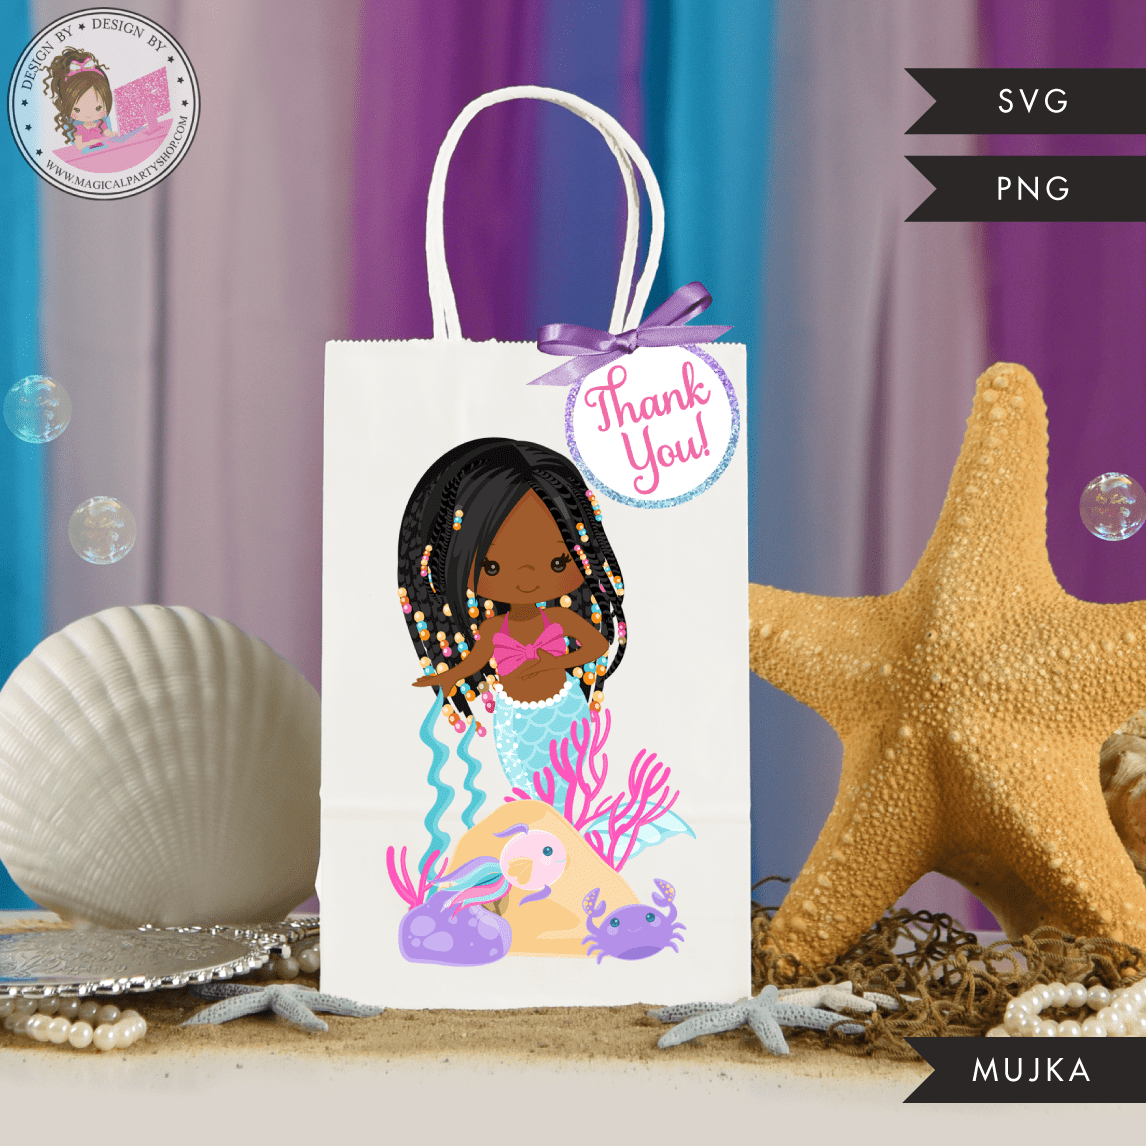 Mermaid Birthday Gift bag and Thank you tags SVG, PNG cutting and print files. Black braids Rainbow mermaid graphics for Cricut, Silhouette